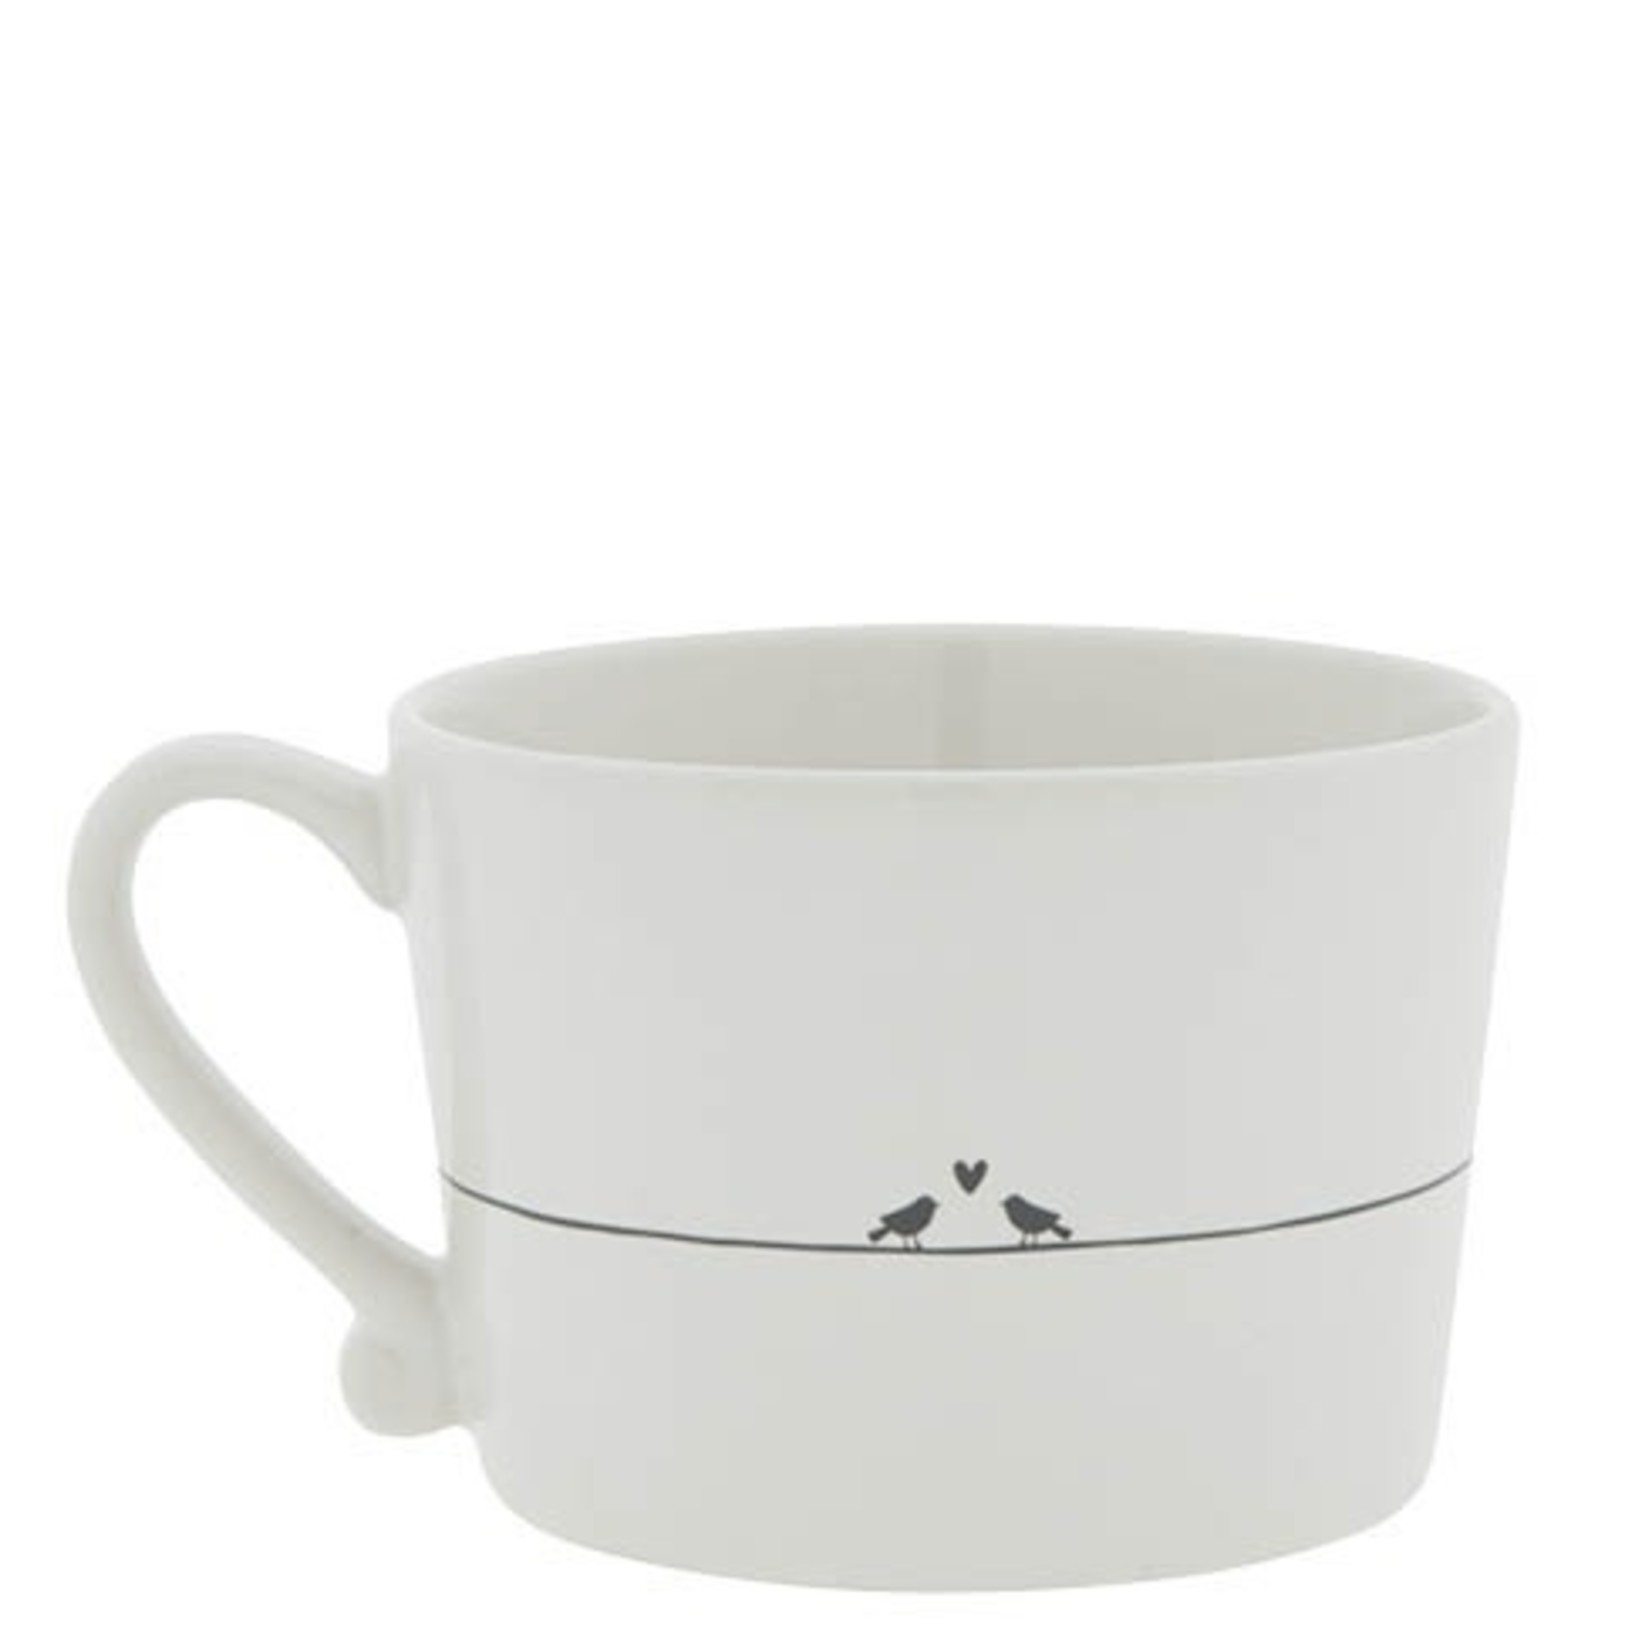 Bastion Collections Cup white Love Bird in black 10x8x7 cm